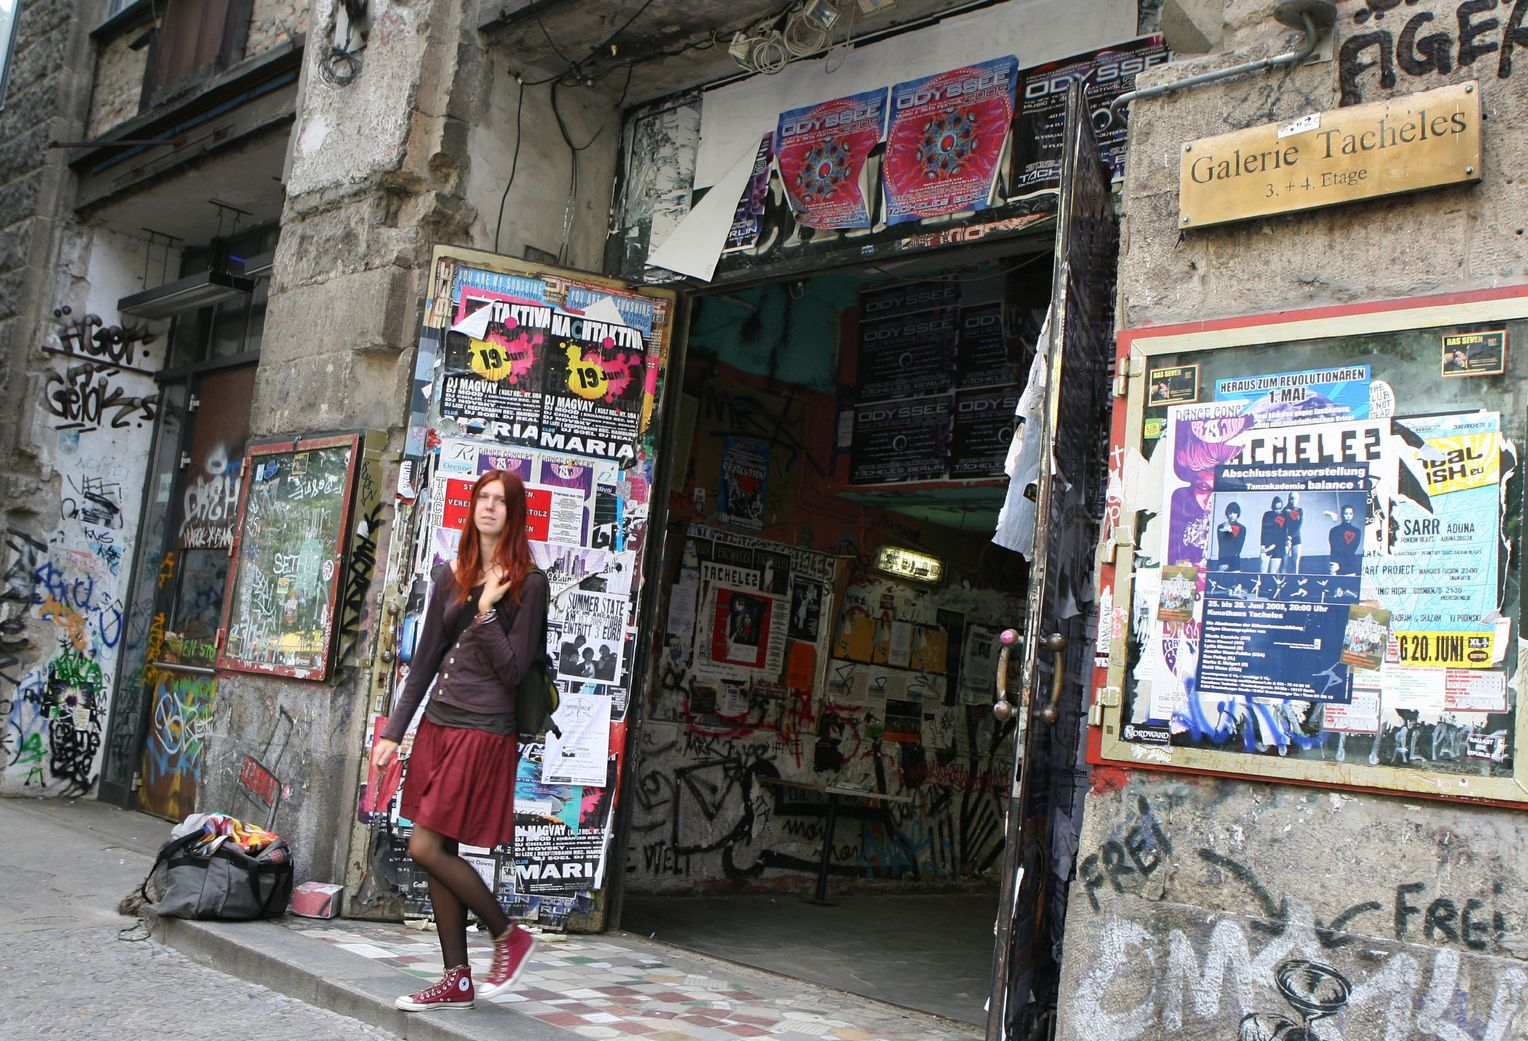 City Getting Blander': Berlin Clears One of its Last Remaining Squats - DER  SPIEGEL